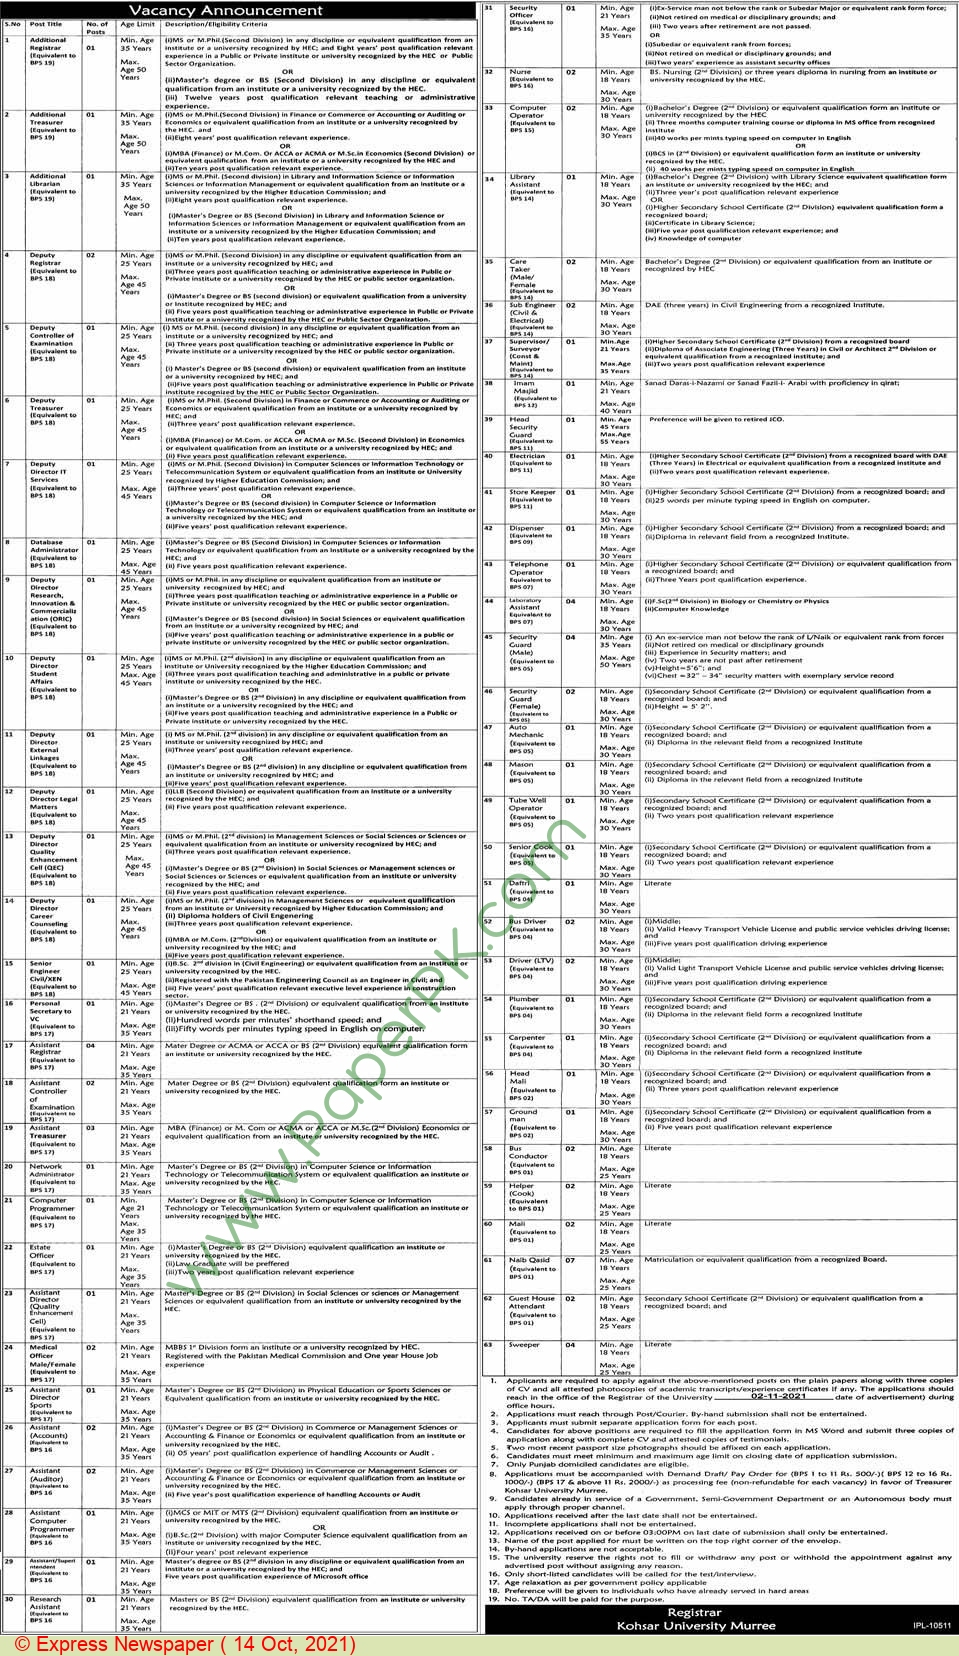 Kohsar University jobs newspaper ad for Security Officer in Murree on 2021-10-14